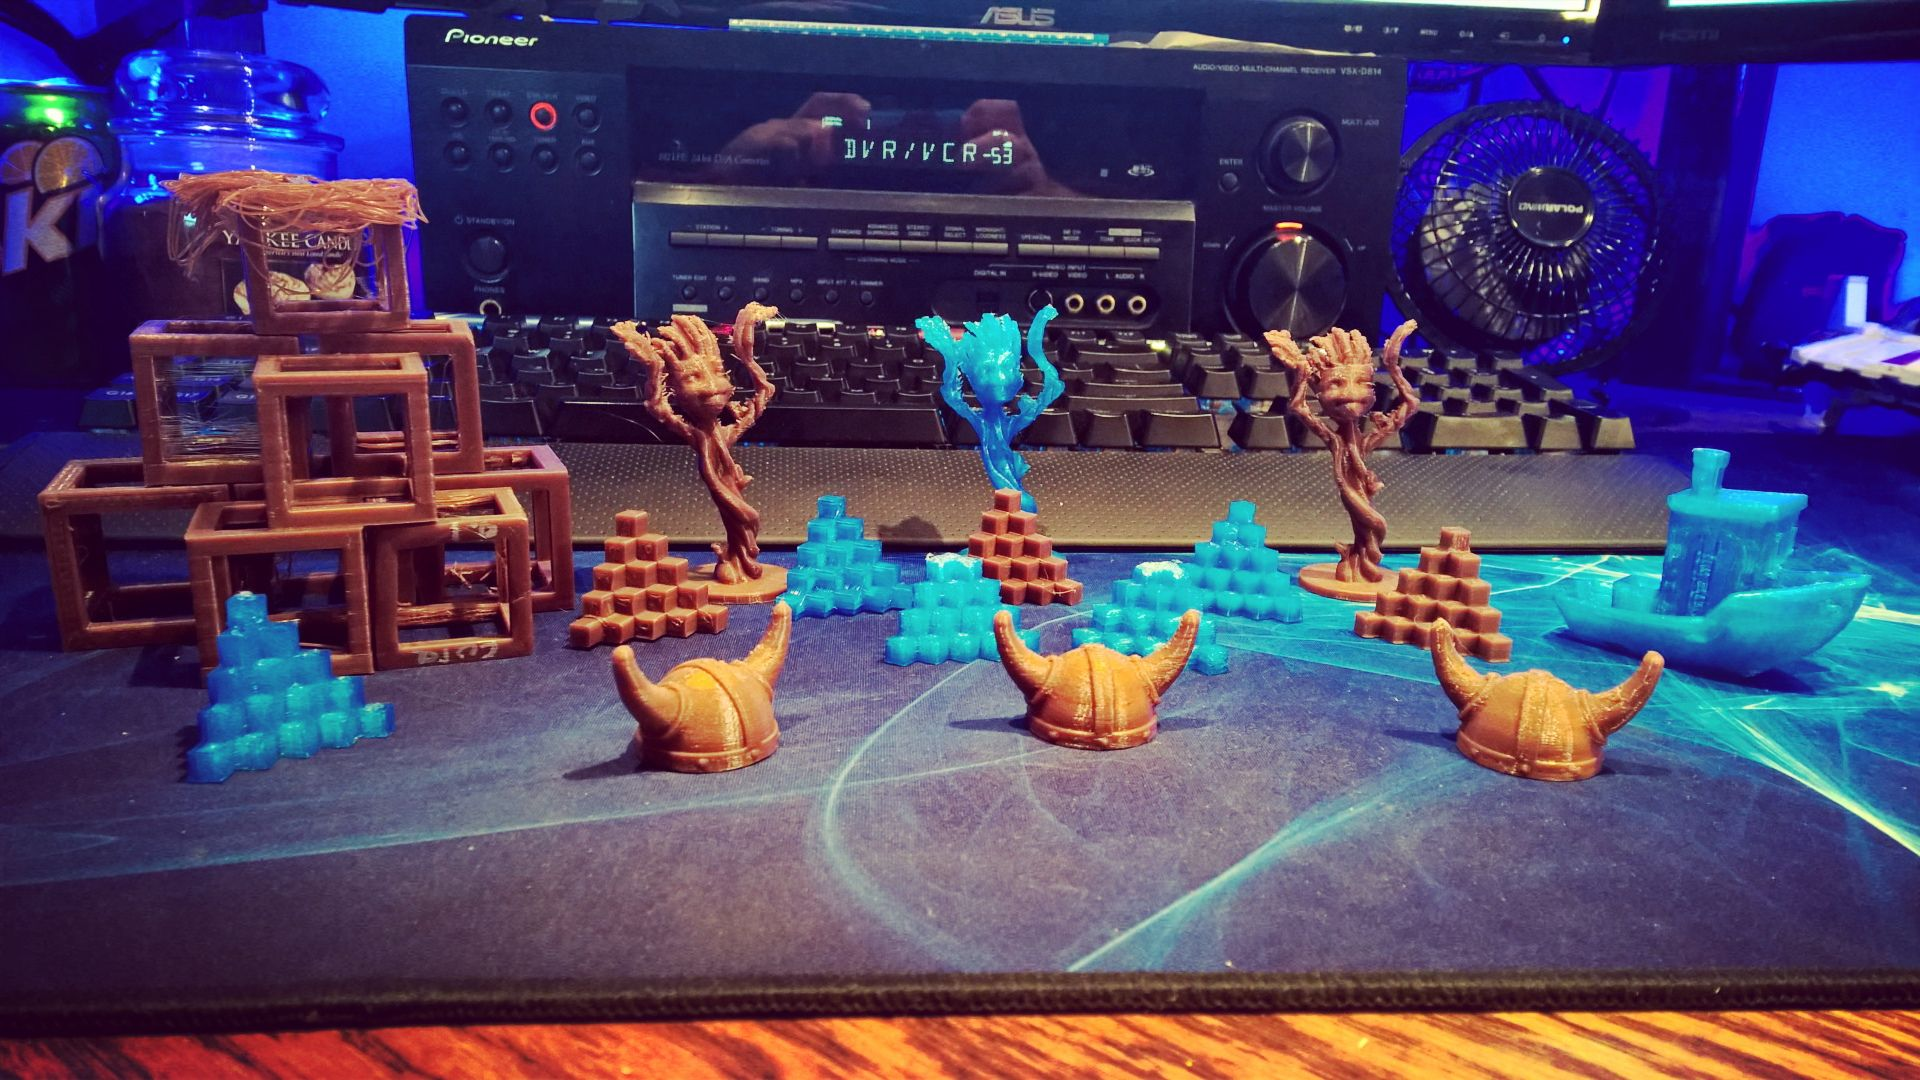 Something we liked from Instagram! In the process of getting the new #3Dprinter that I built fully calibrated and dialed in I've printed many a calibration piece... I got bored with just cubes and steps so I went on to mini Groots and Viking helmets... #3dprinting by lumberjackengineering check us out: http://bit.ly/1KyLetq